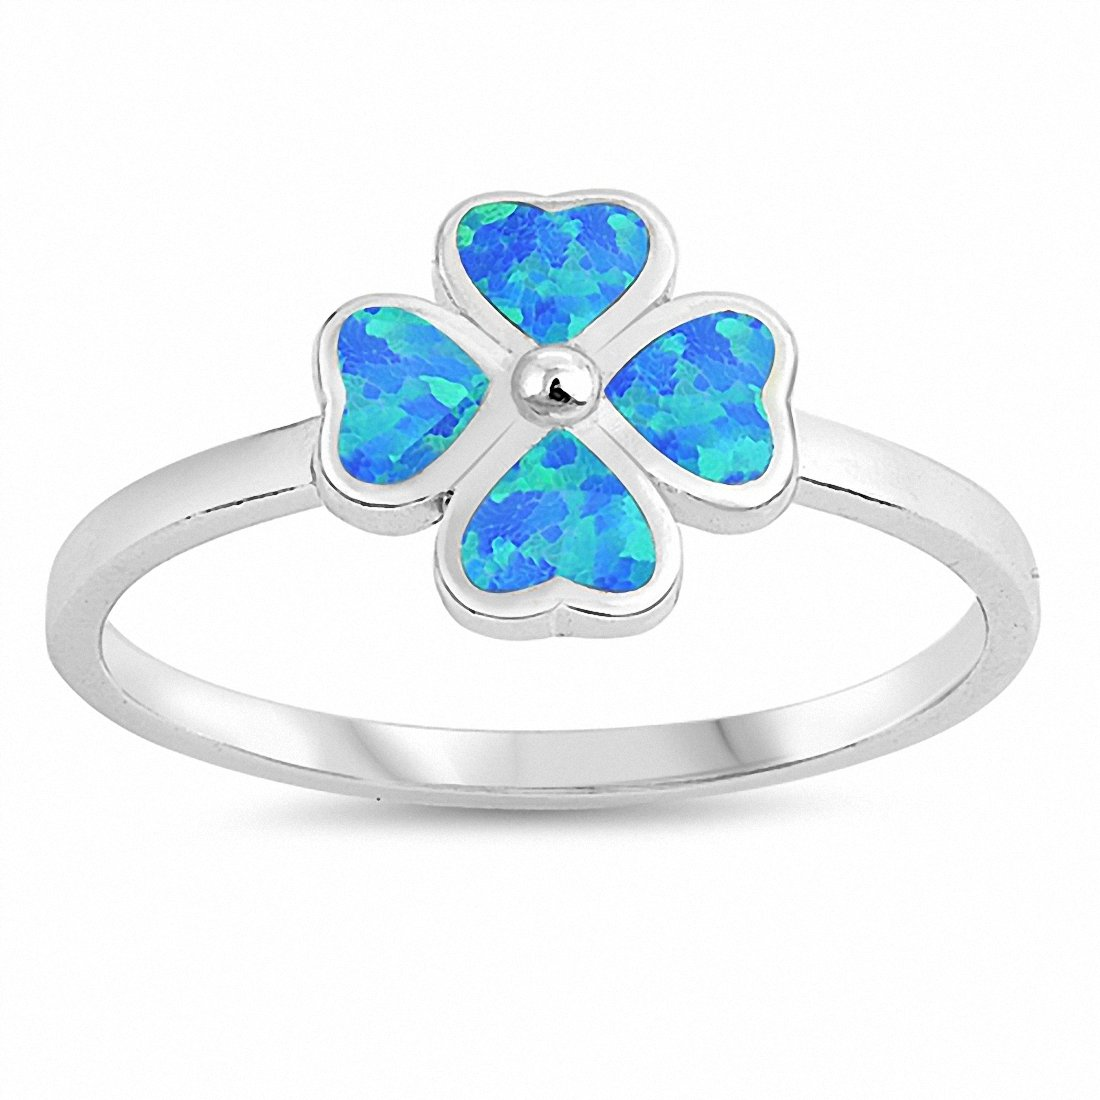 Clover Leaf Plumeria Ring Created Opal 925 Sterling Silver Choose Color